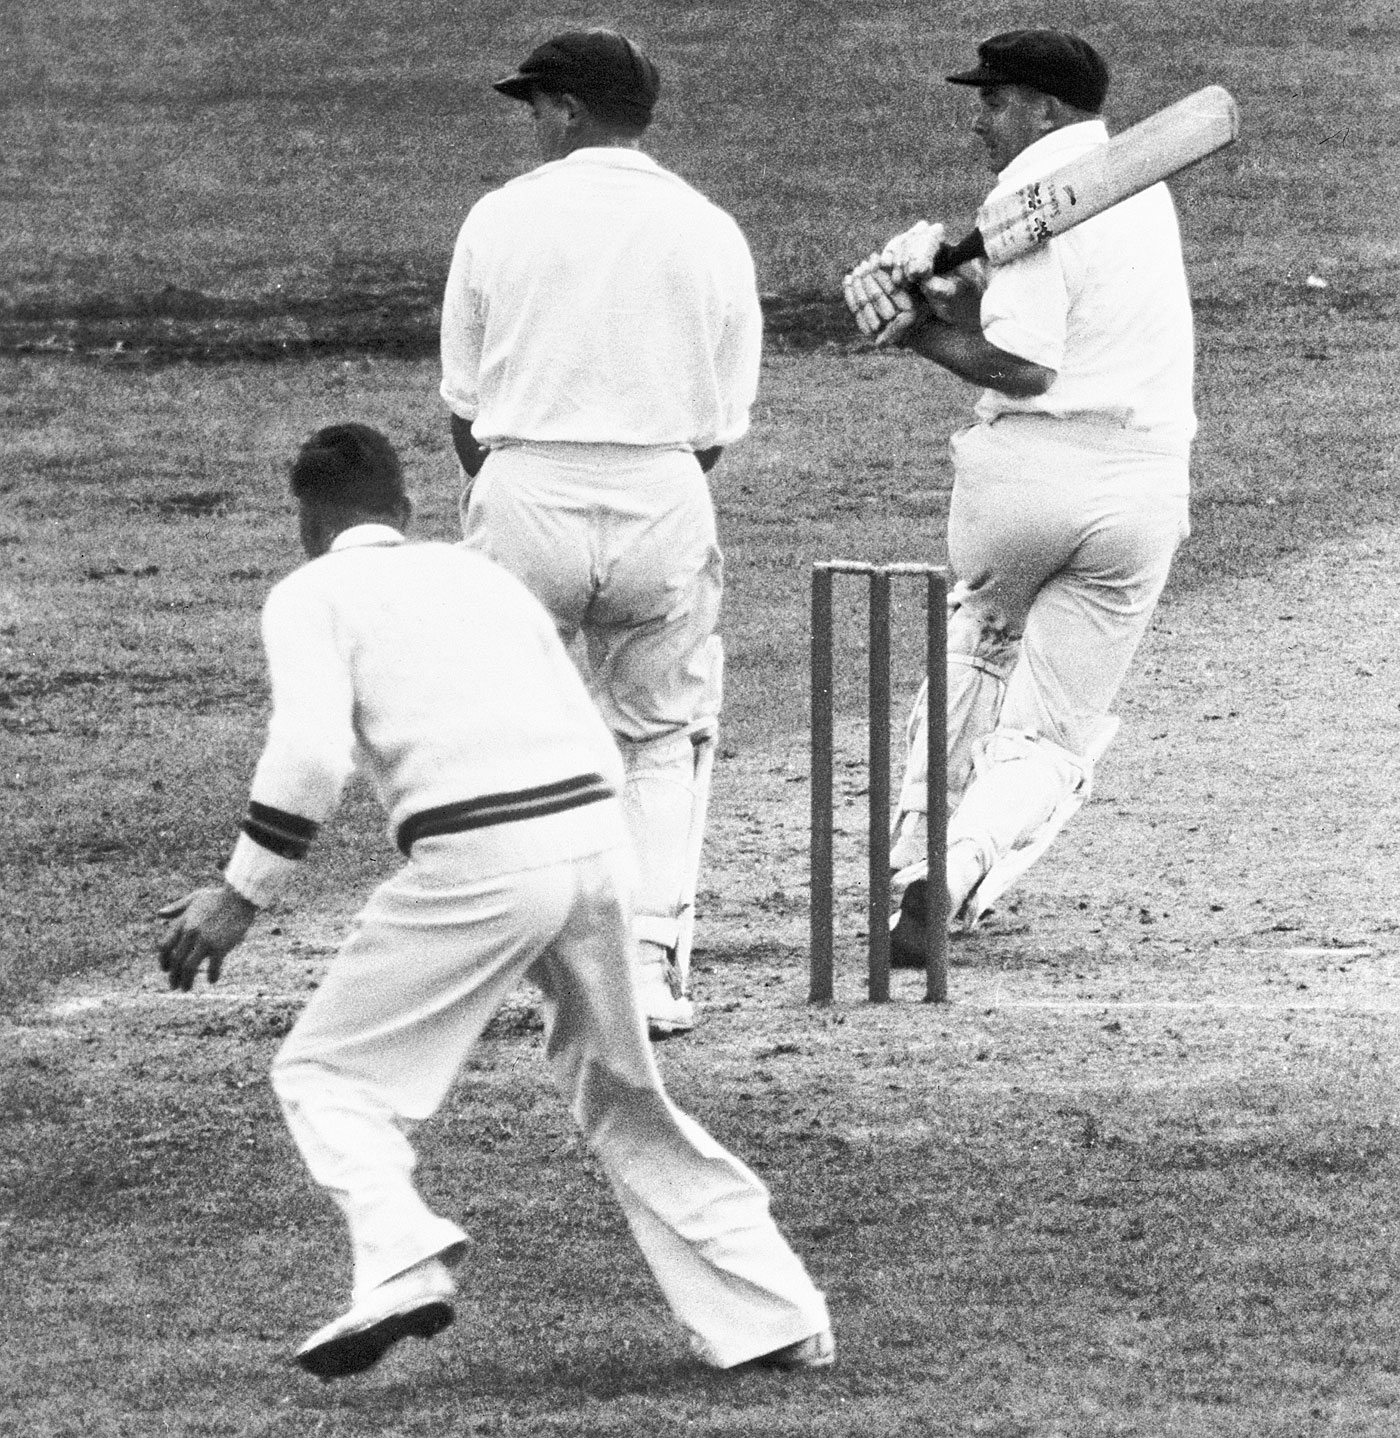 John Rutherford bats during the 1956 England tour - a trip on which he never played a Test